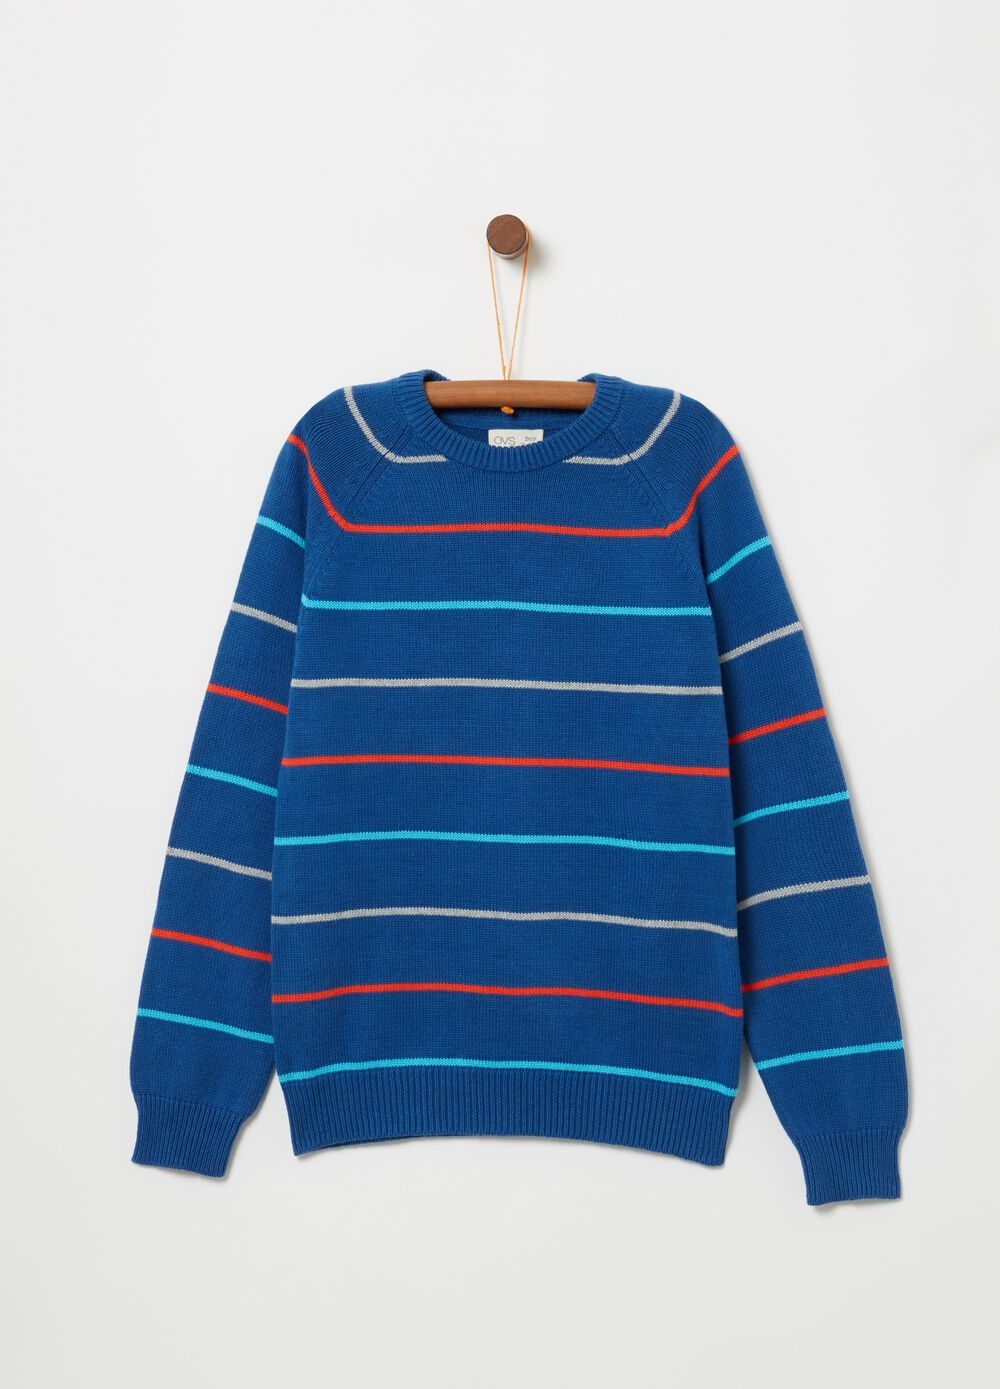 100% cotton top with stripes